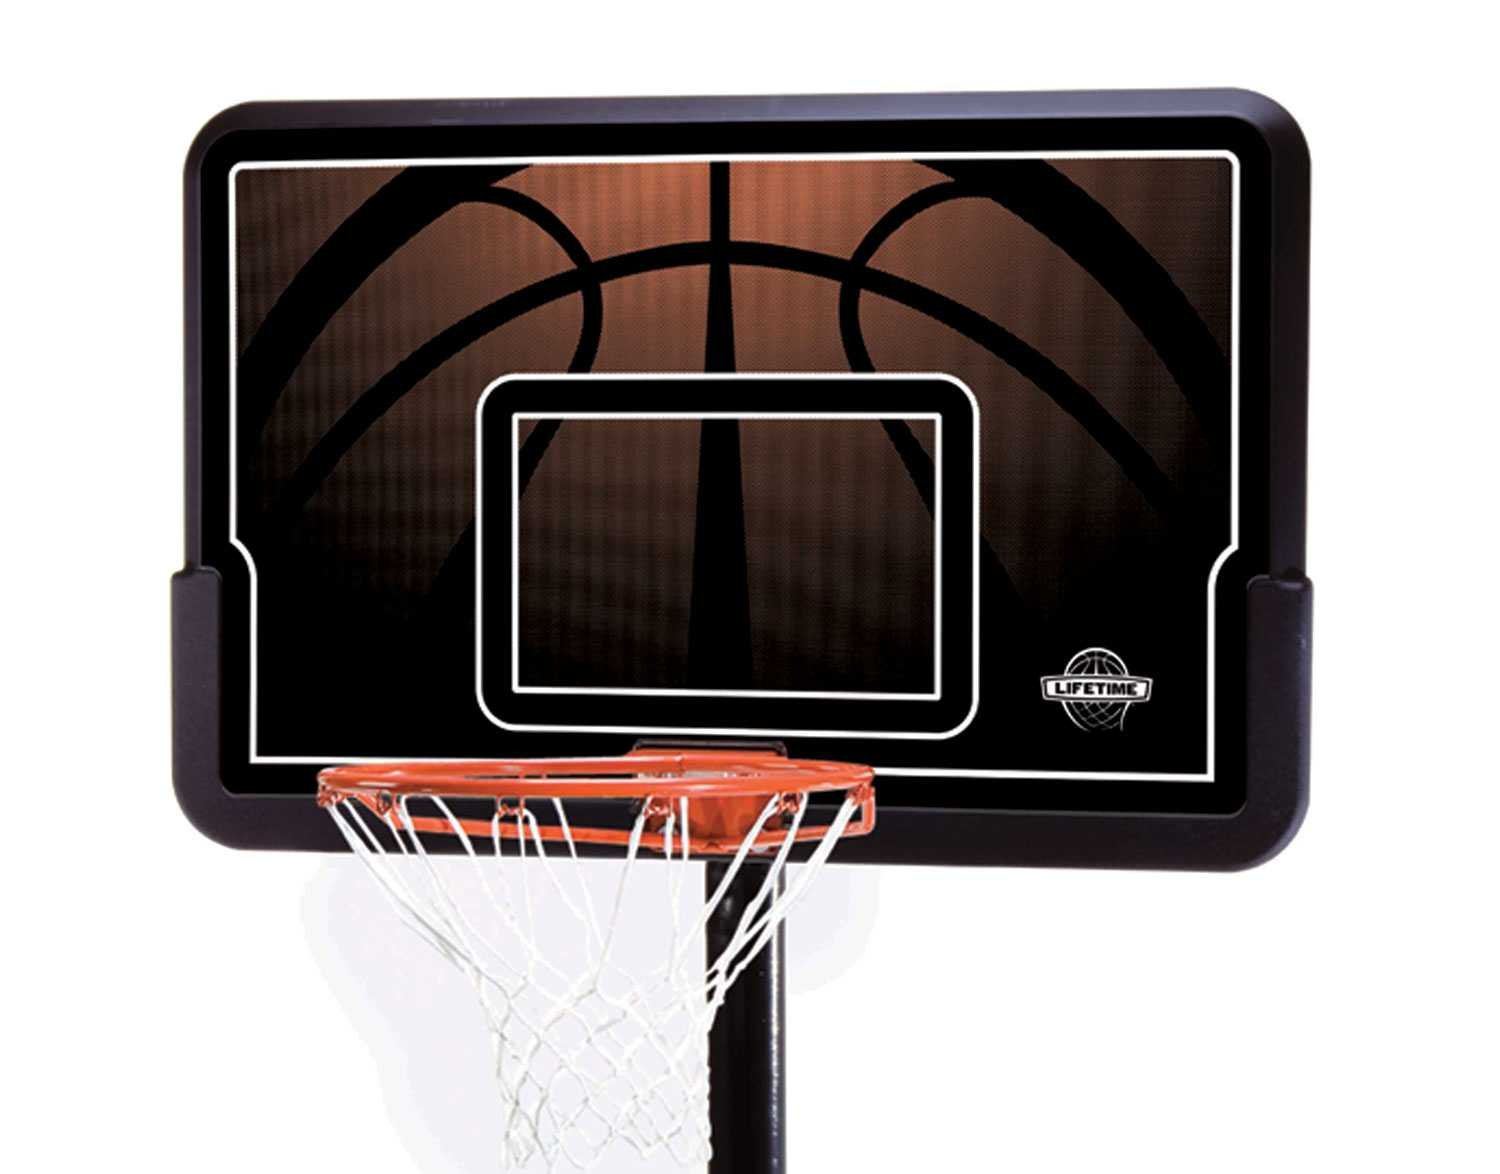 Lifetime 90040 Height Adjustable Portable Basketball System, 44 Inch Backboard by Lifetime (Image #2)